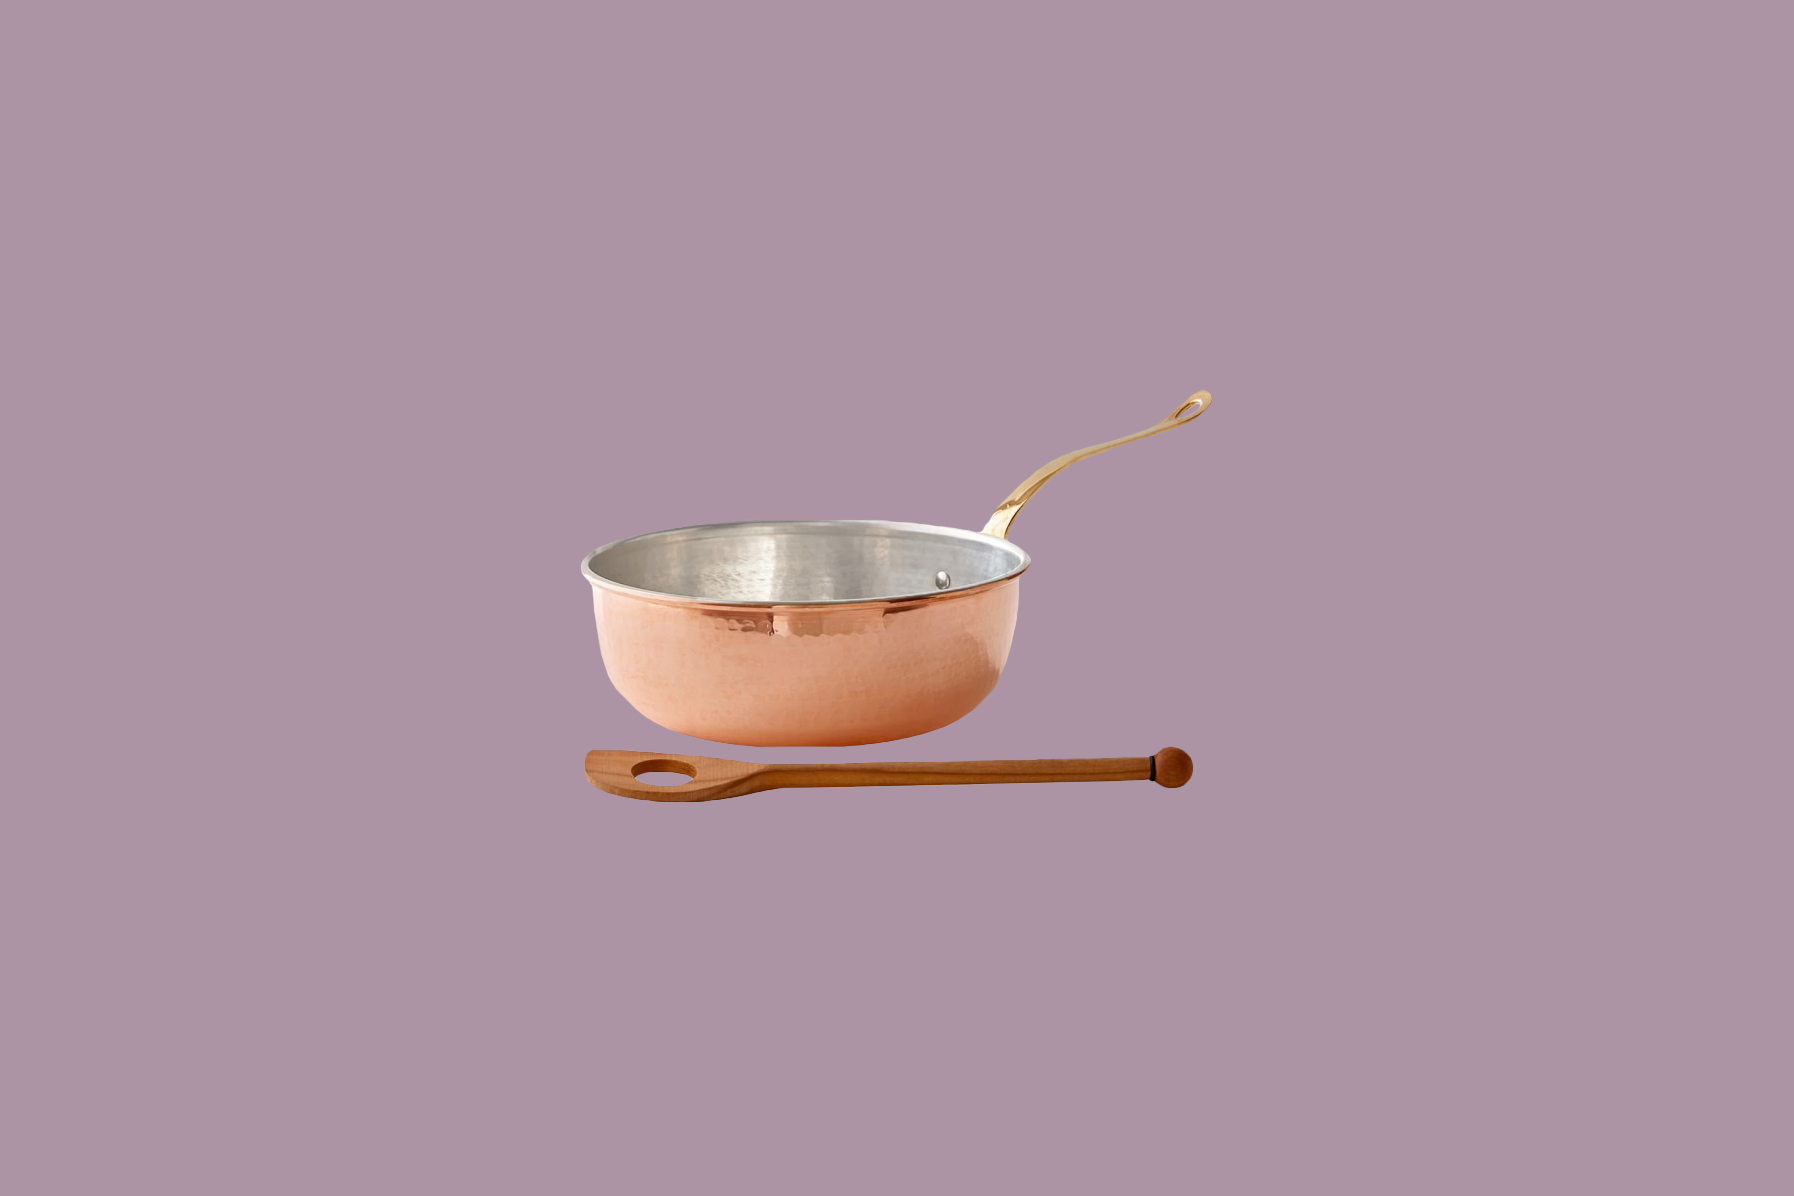 Ruffoni Historia Hammered Copper chefs pan with wooden spoon